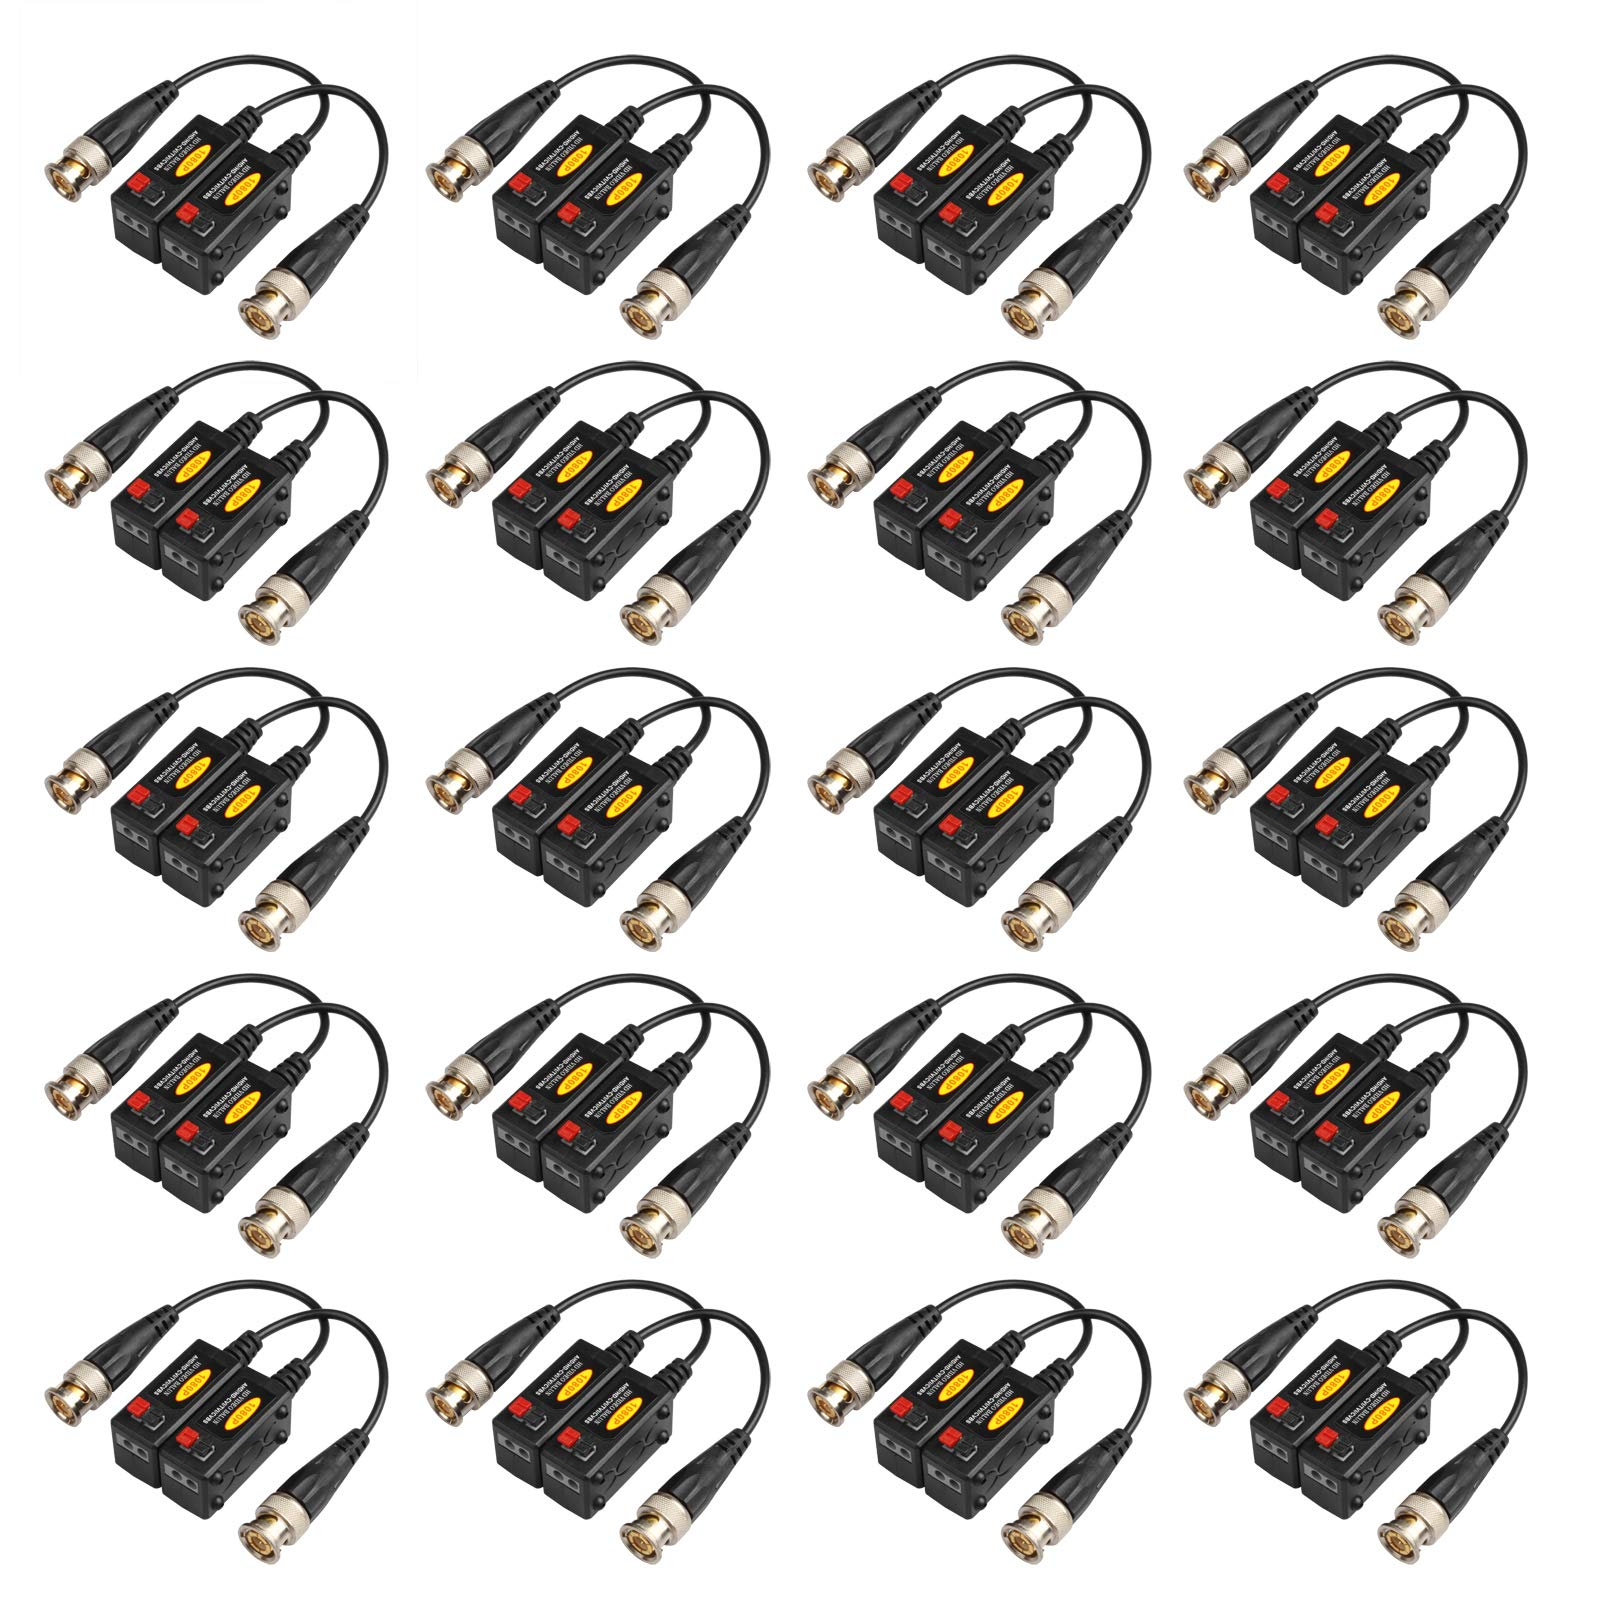 20 Pairs Passive HD BNC Video Balun Transceiver Transmitter AHD/TVI/CVI/CVBS Cable Connectors for 720P/960P/1080P/3MP/5MP CCTV Security Cameras by eoere